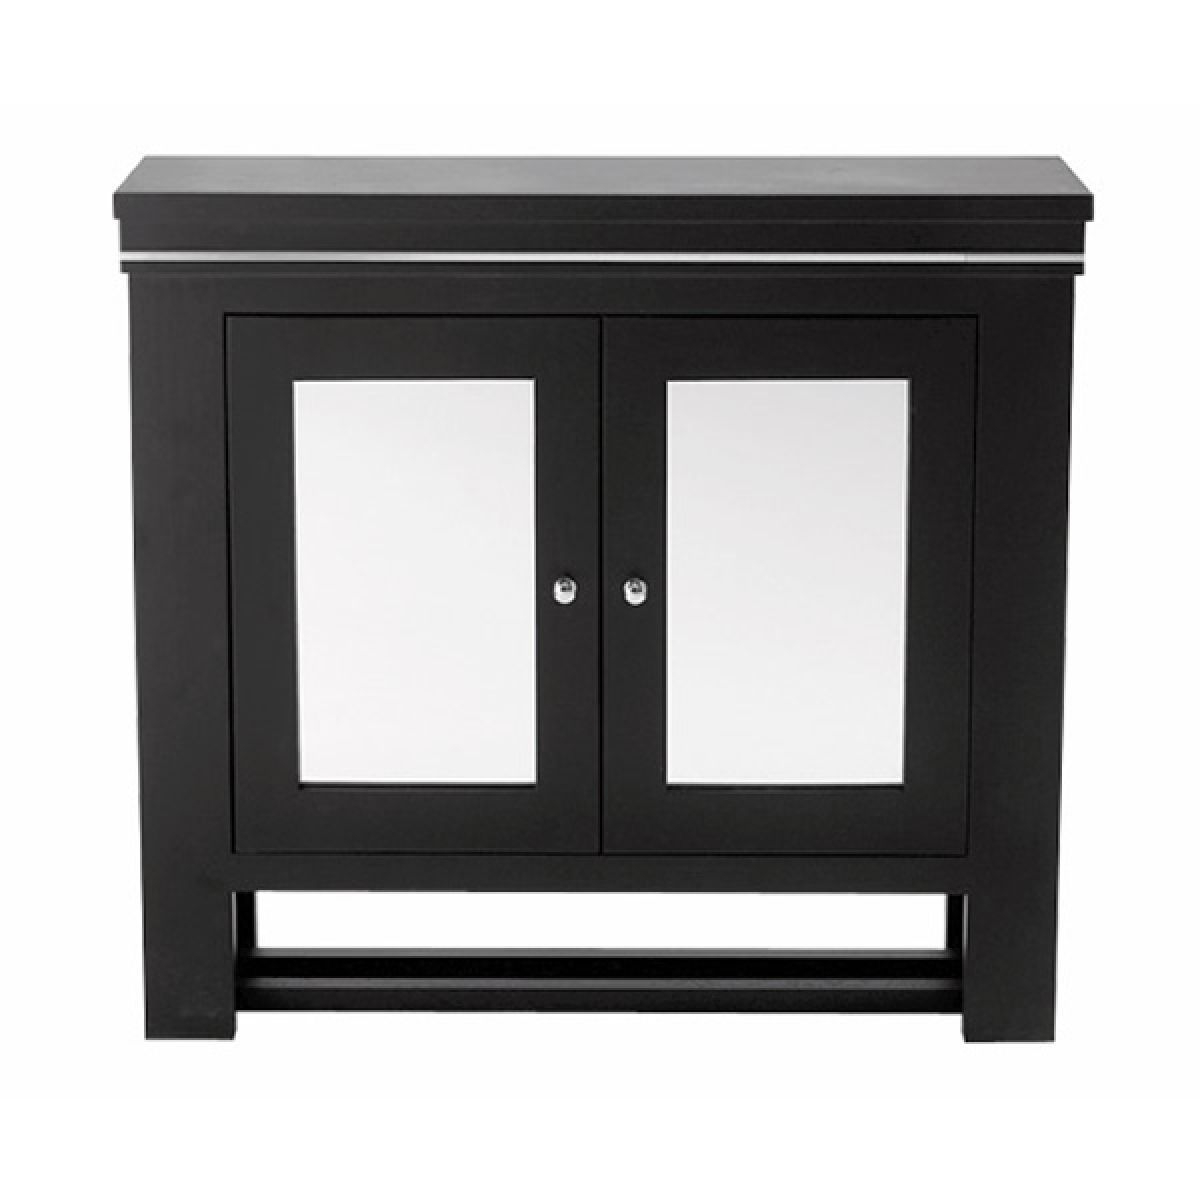 Imperial Astoria Deco Harmony Mirror Wall Cabinet 2 Doors